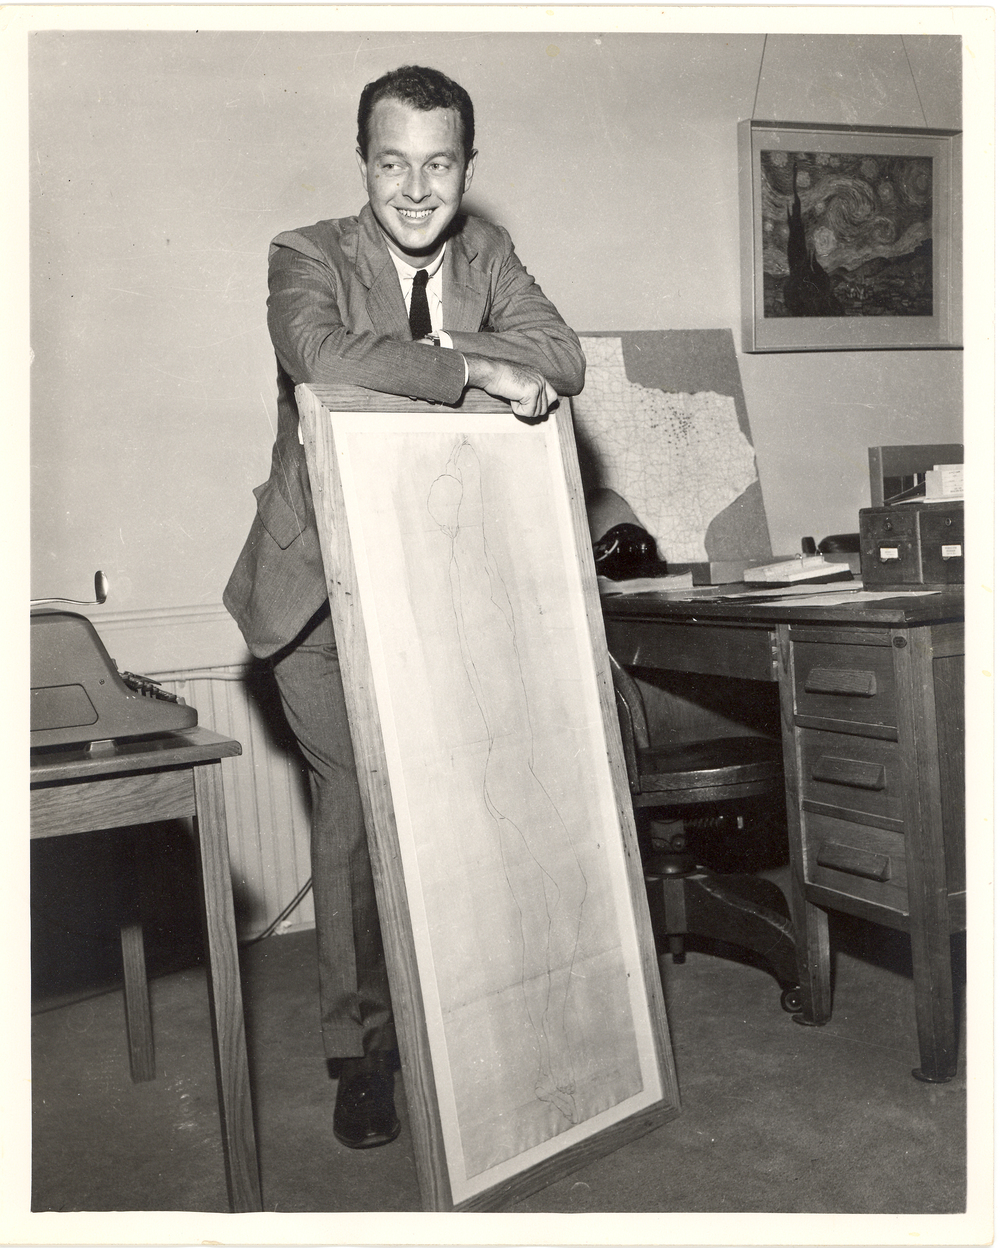 Reilly Nail with an early purchase that began his art collection, ca 1950s